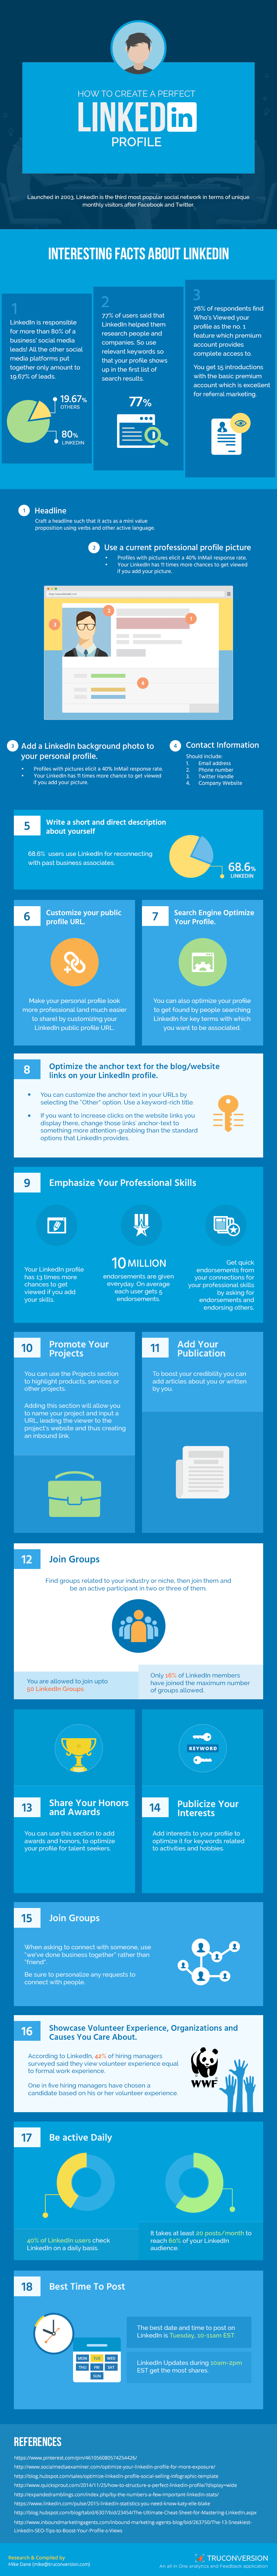 20160304113726-How-to-optimize-your-LinkedIn-profile